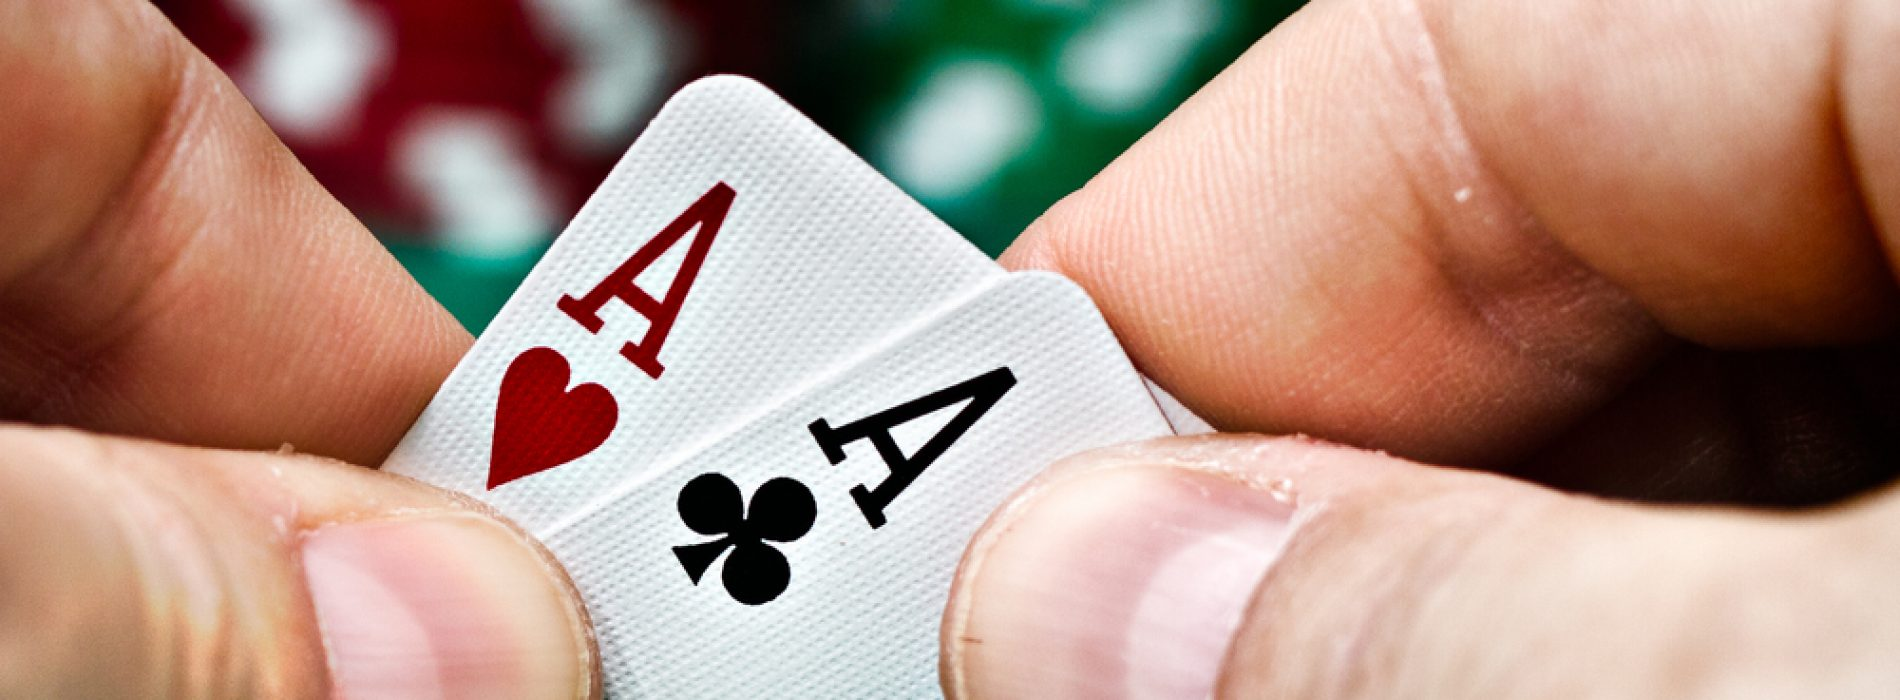 DIVORCE: KNOW WHEN TO HOLD 'EM, KNOW WHEN TO FOLD 'EM